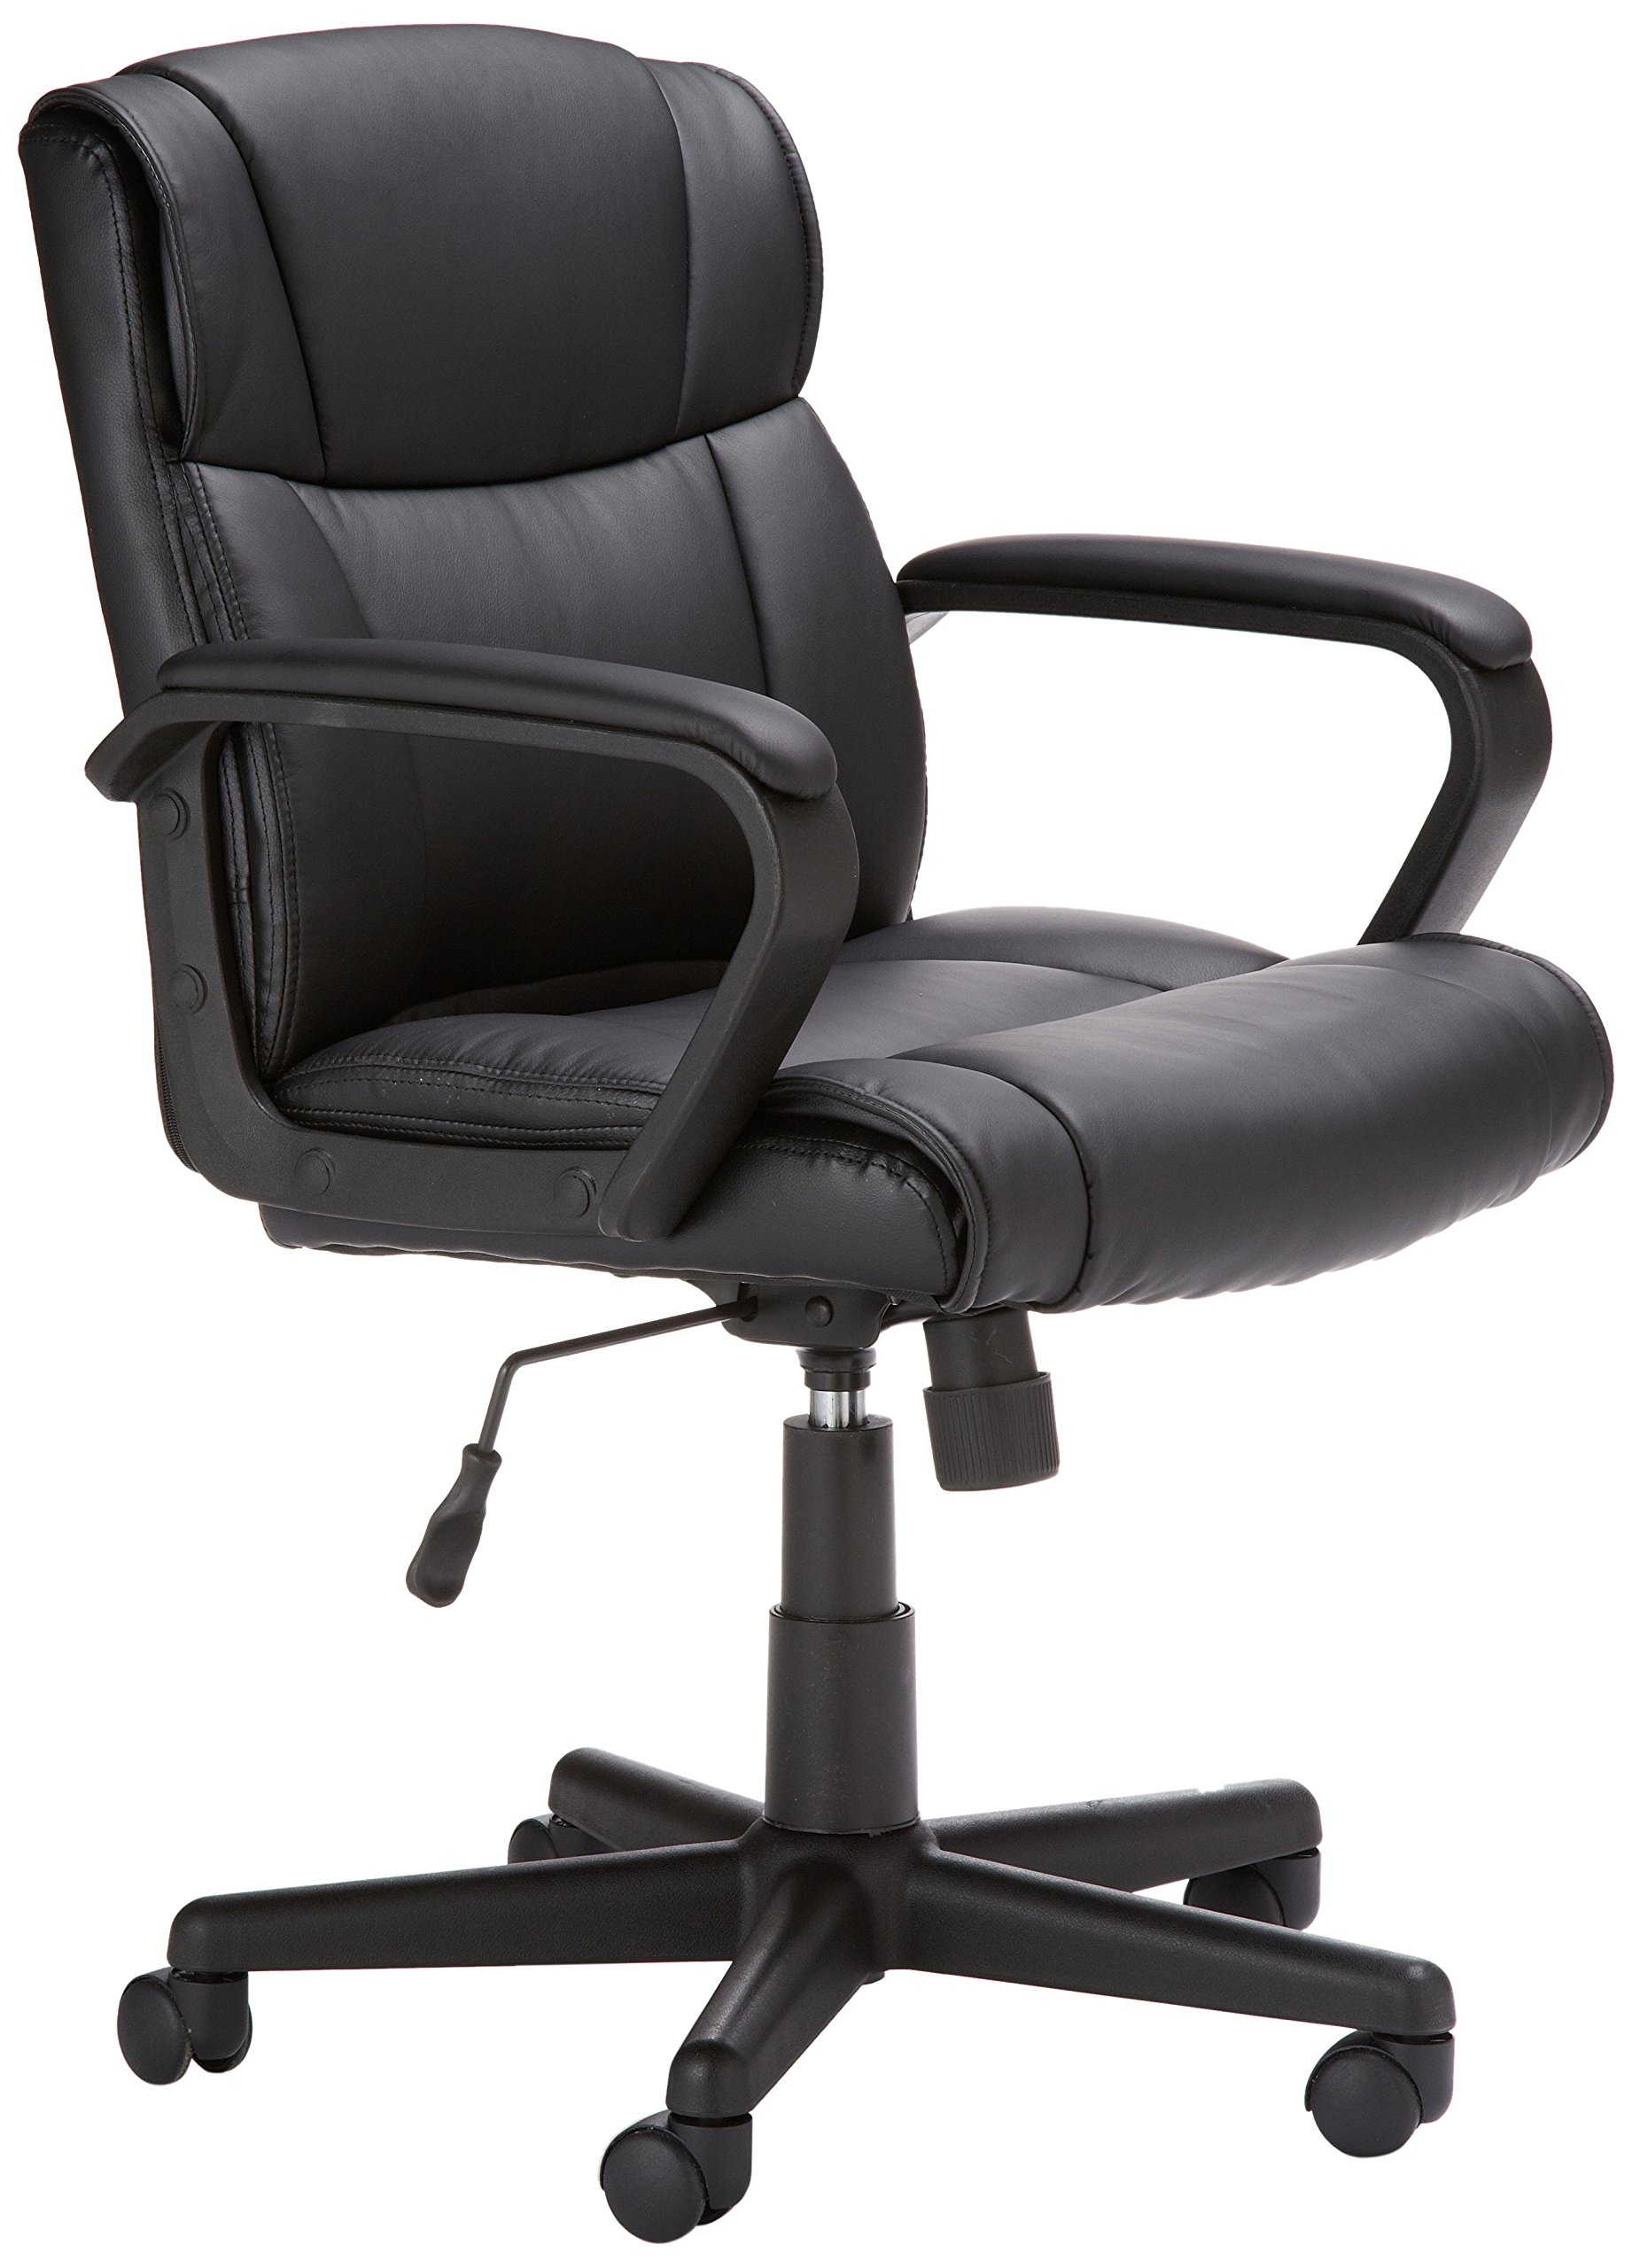 herman worth june chair miller office it embody this review reviews home